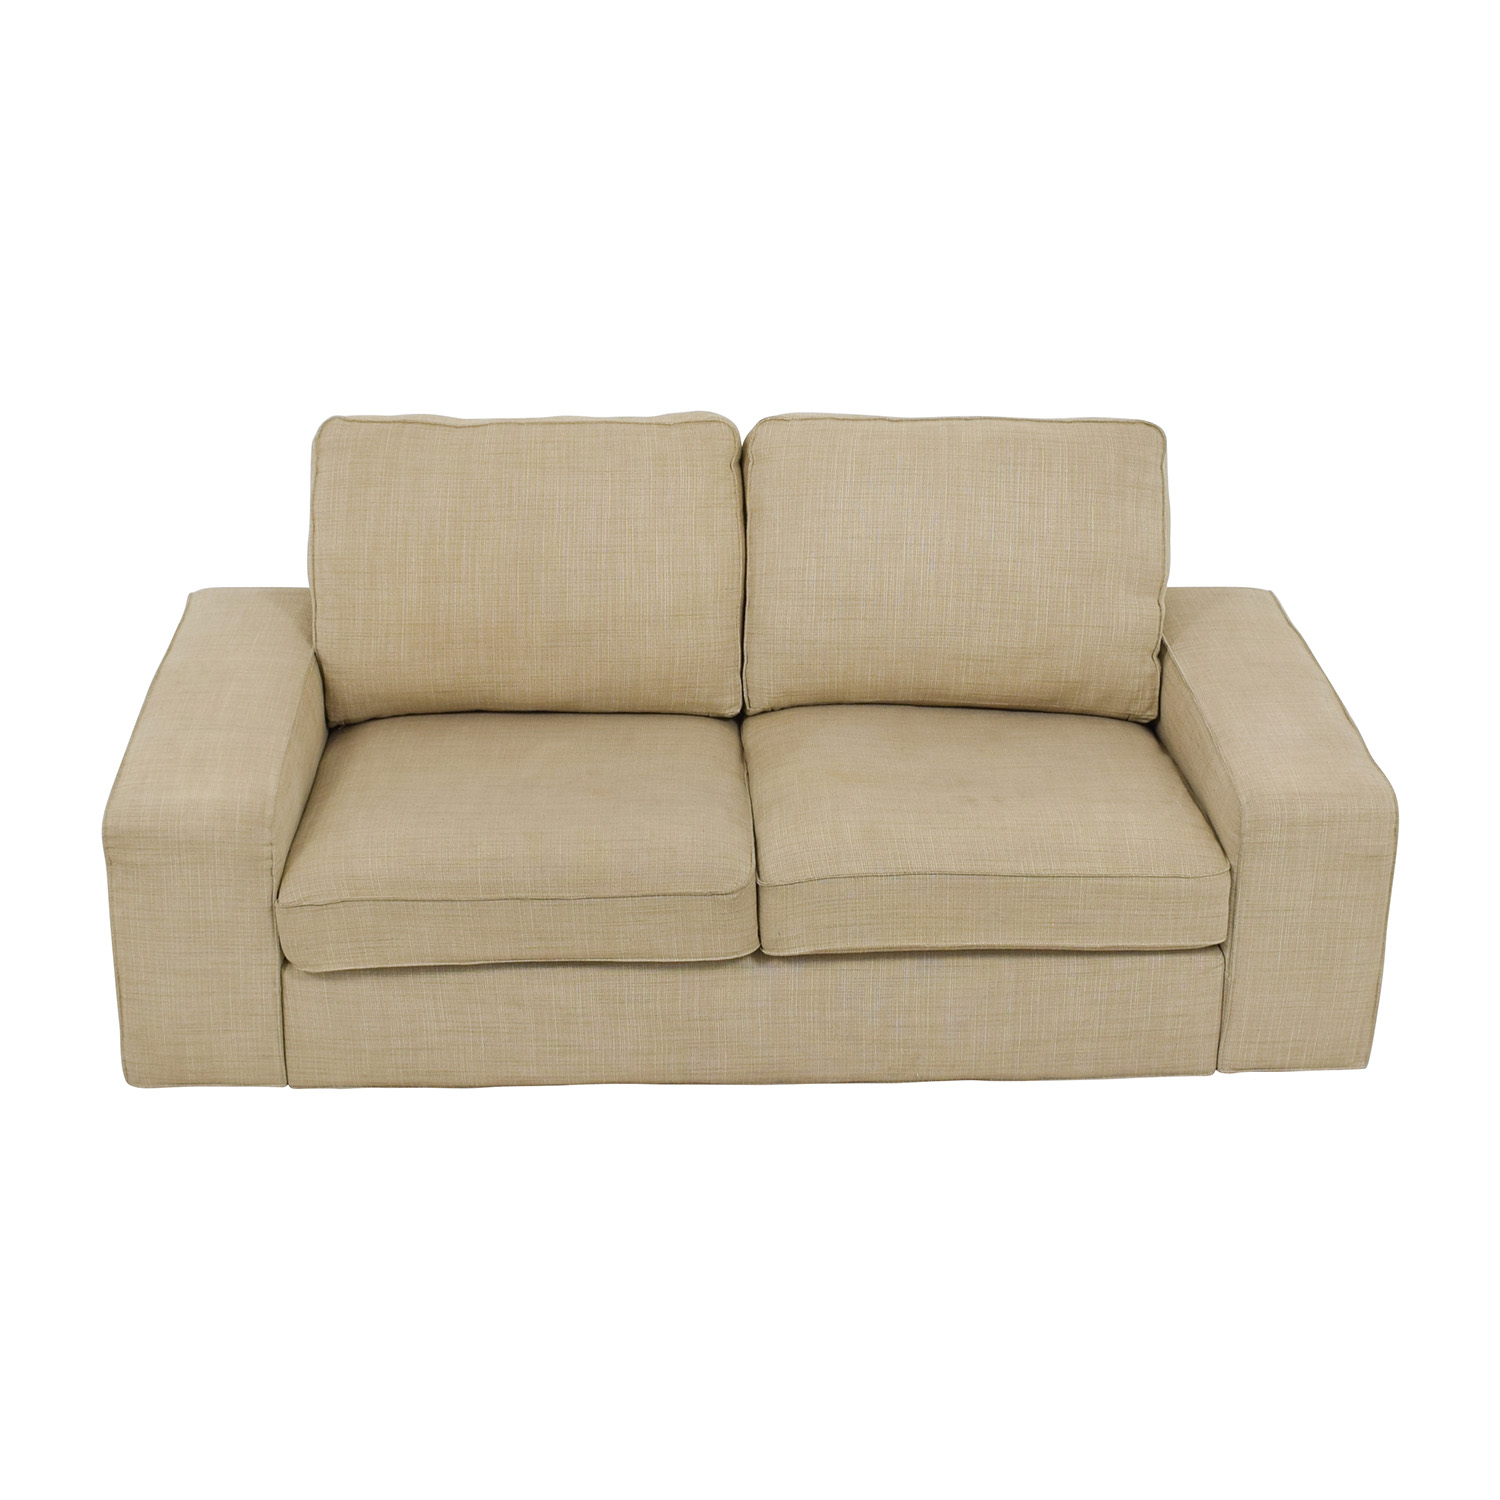 leather fabric home loveseats design loveseat rustic western product rancher by